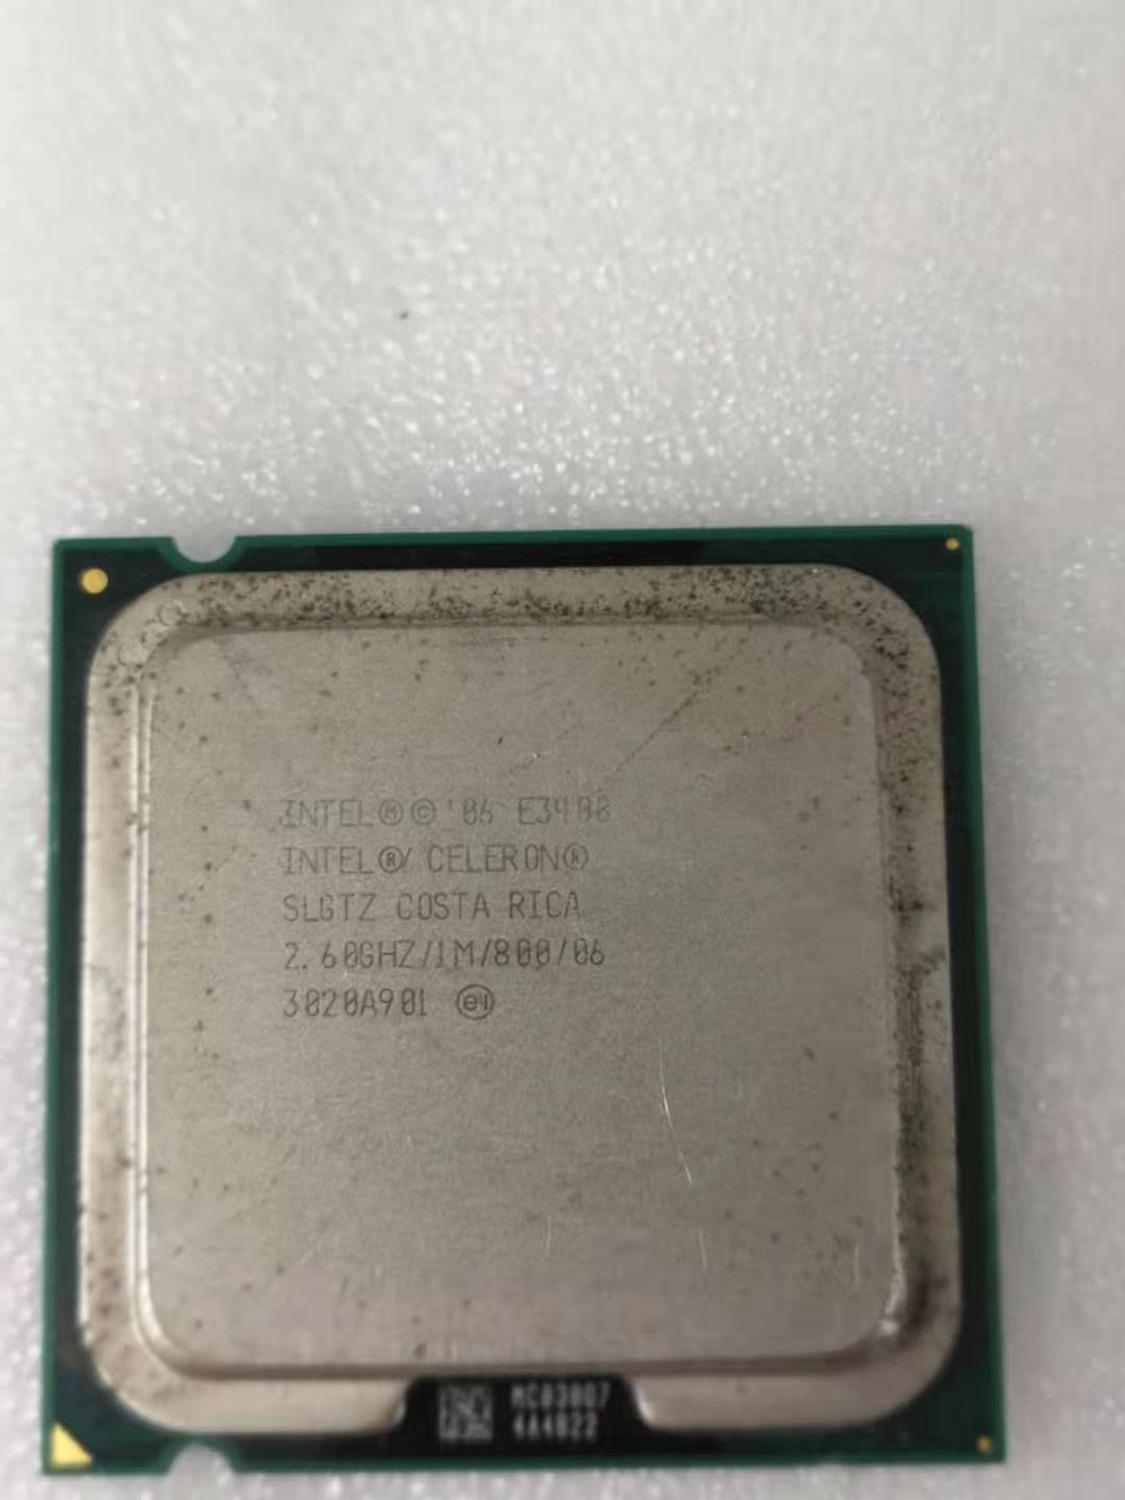 Intel Core 2 Duo E3400 Desktop Processor Dual-Core 2.6GHz 1MB Cache FSB 800MHz LGA 775 E 3400 Used CPU